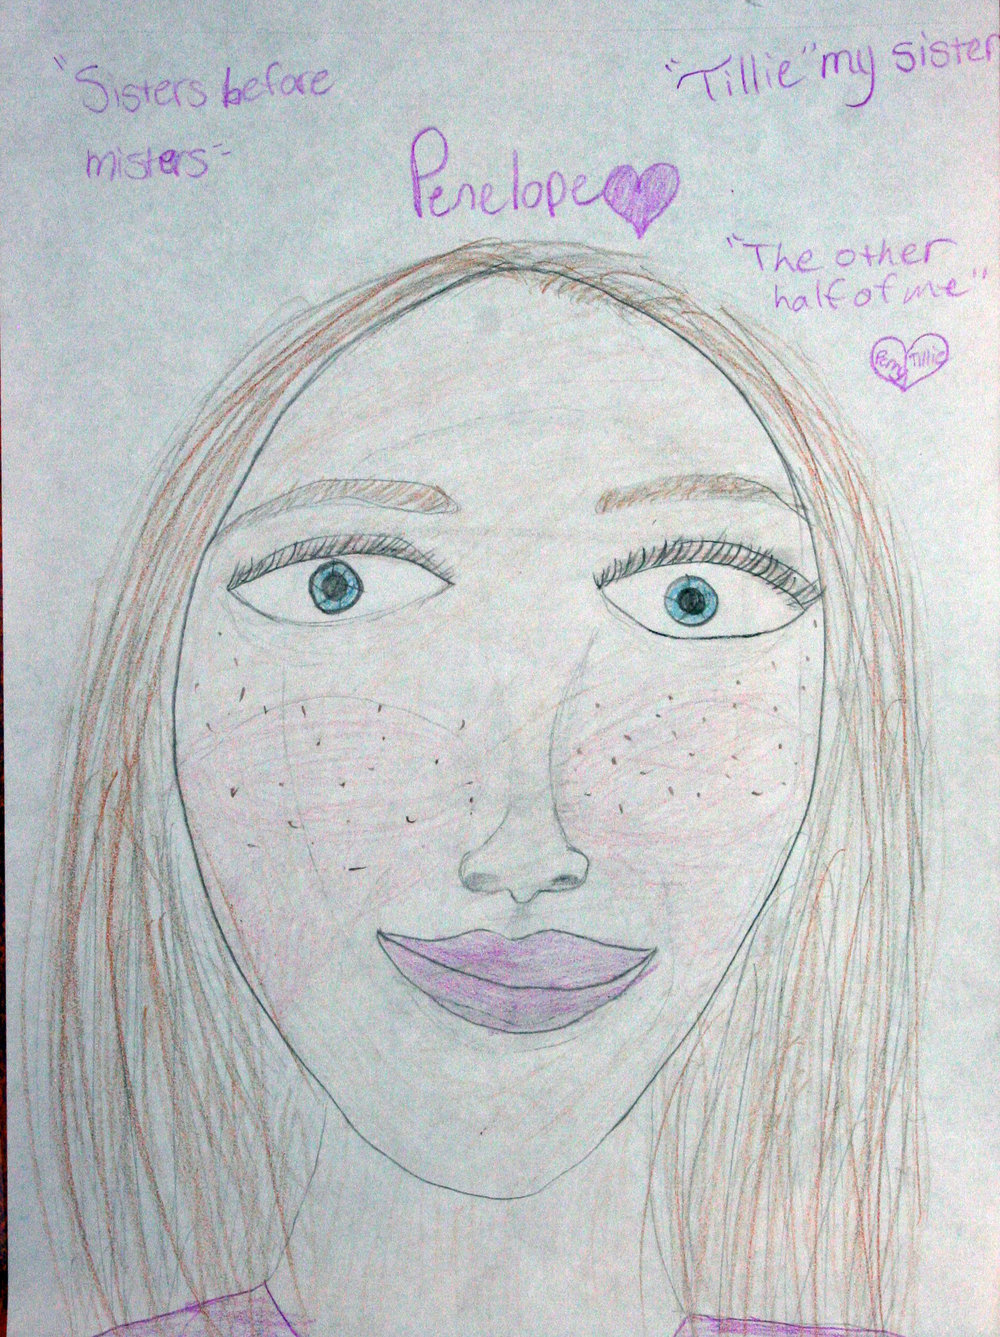 Penny did this drawing of her sister Tillie.